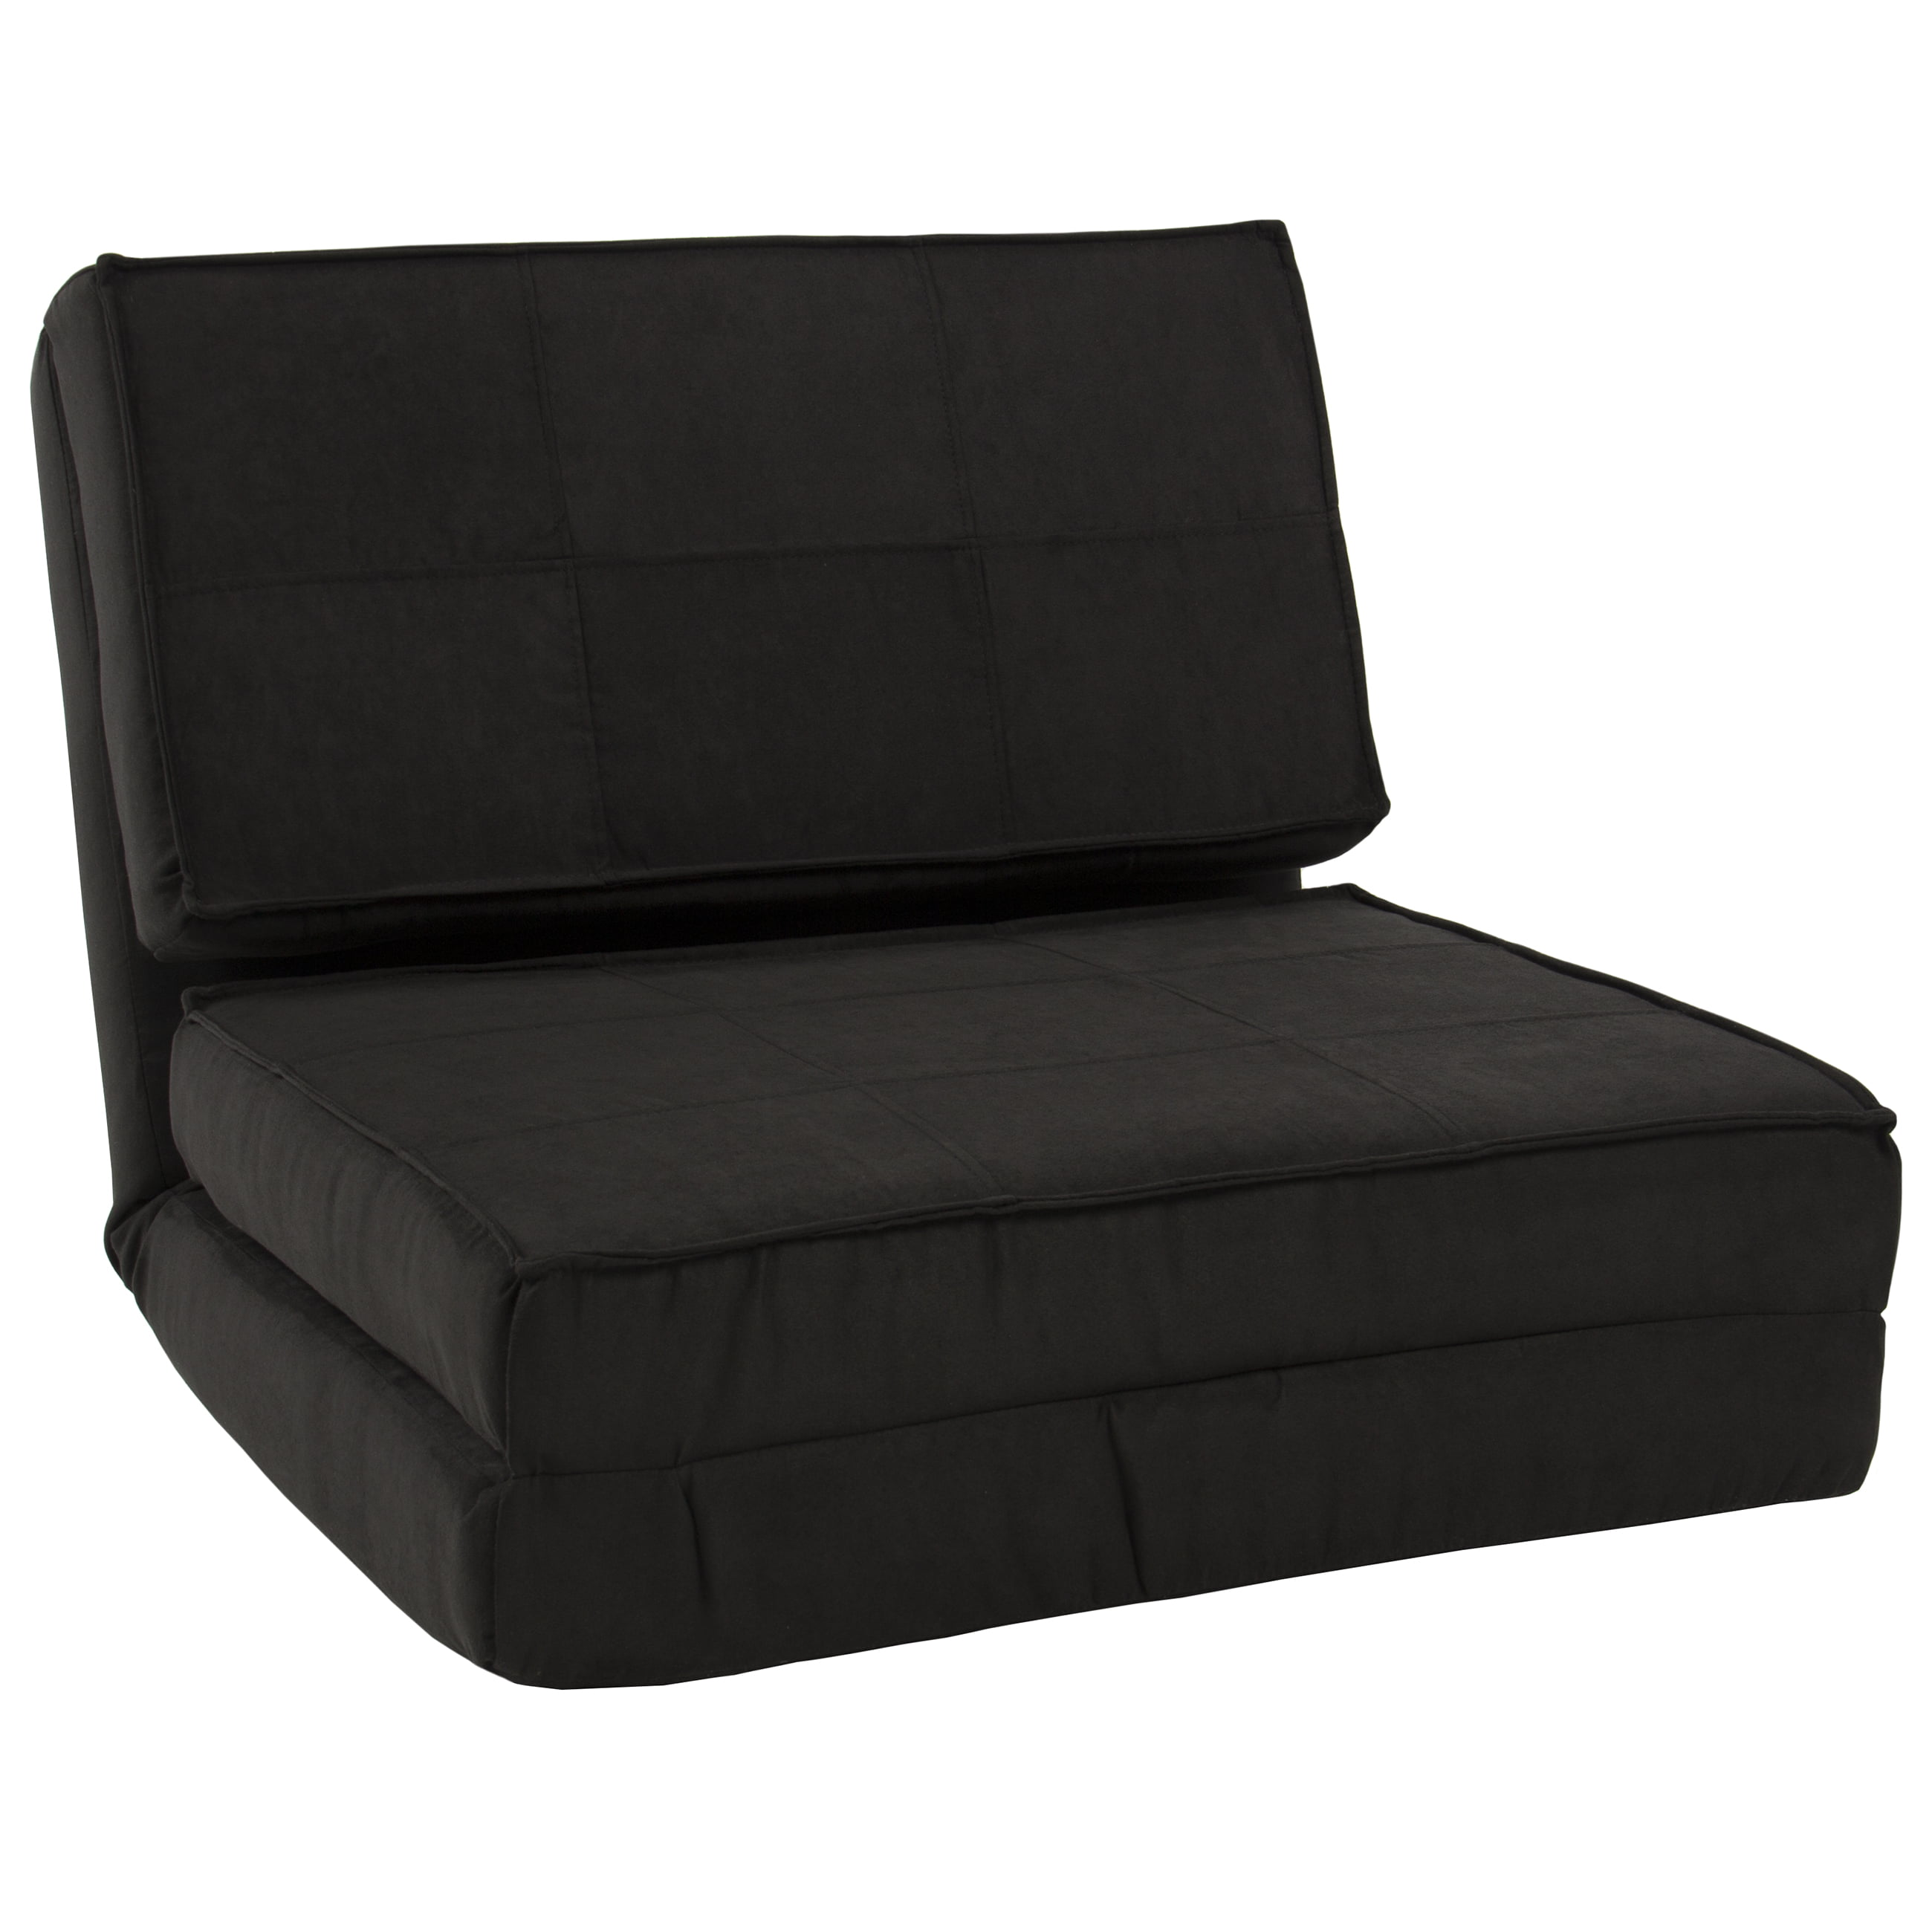 Bed chair pillow walmart - Fold Down Chair Flip Out Lounger Convertible Sleeper Bed Couch Game Dorm Guest Walmart Com